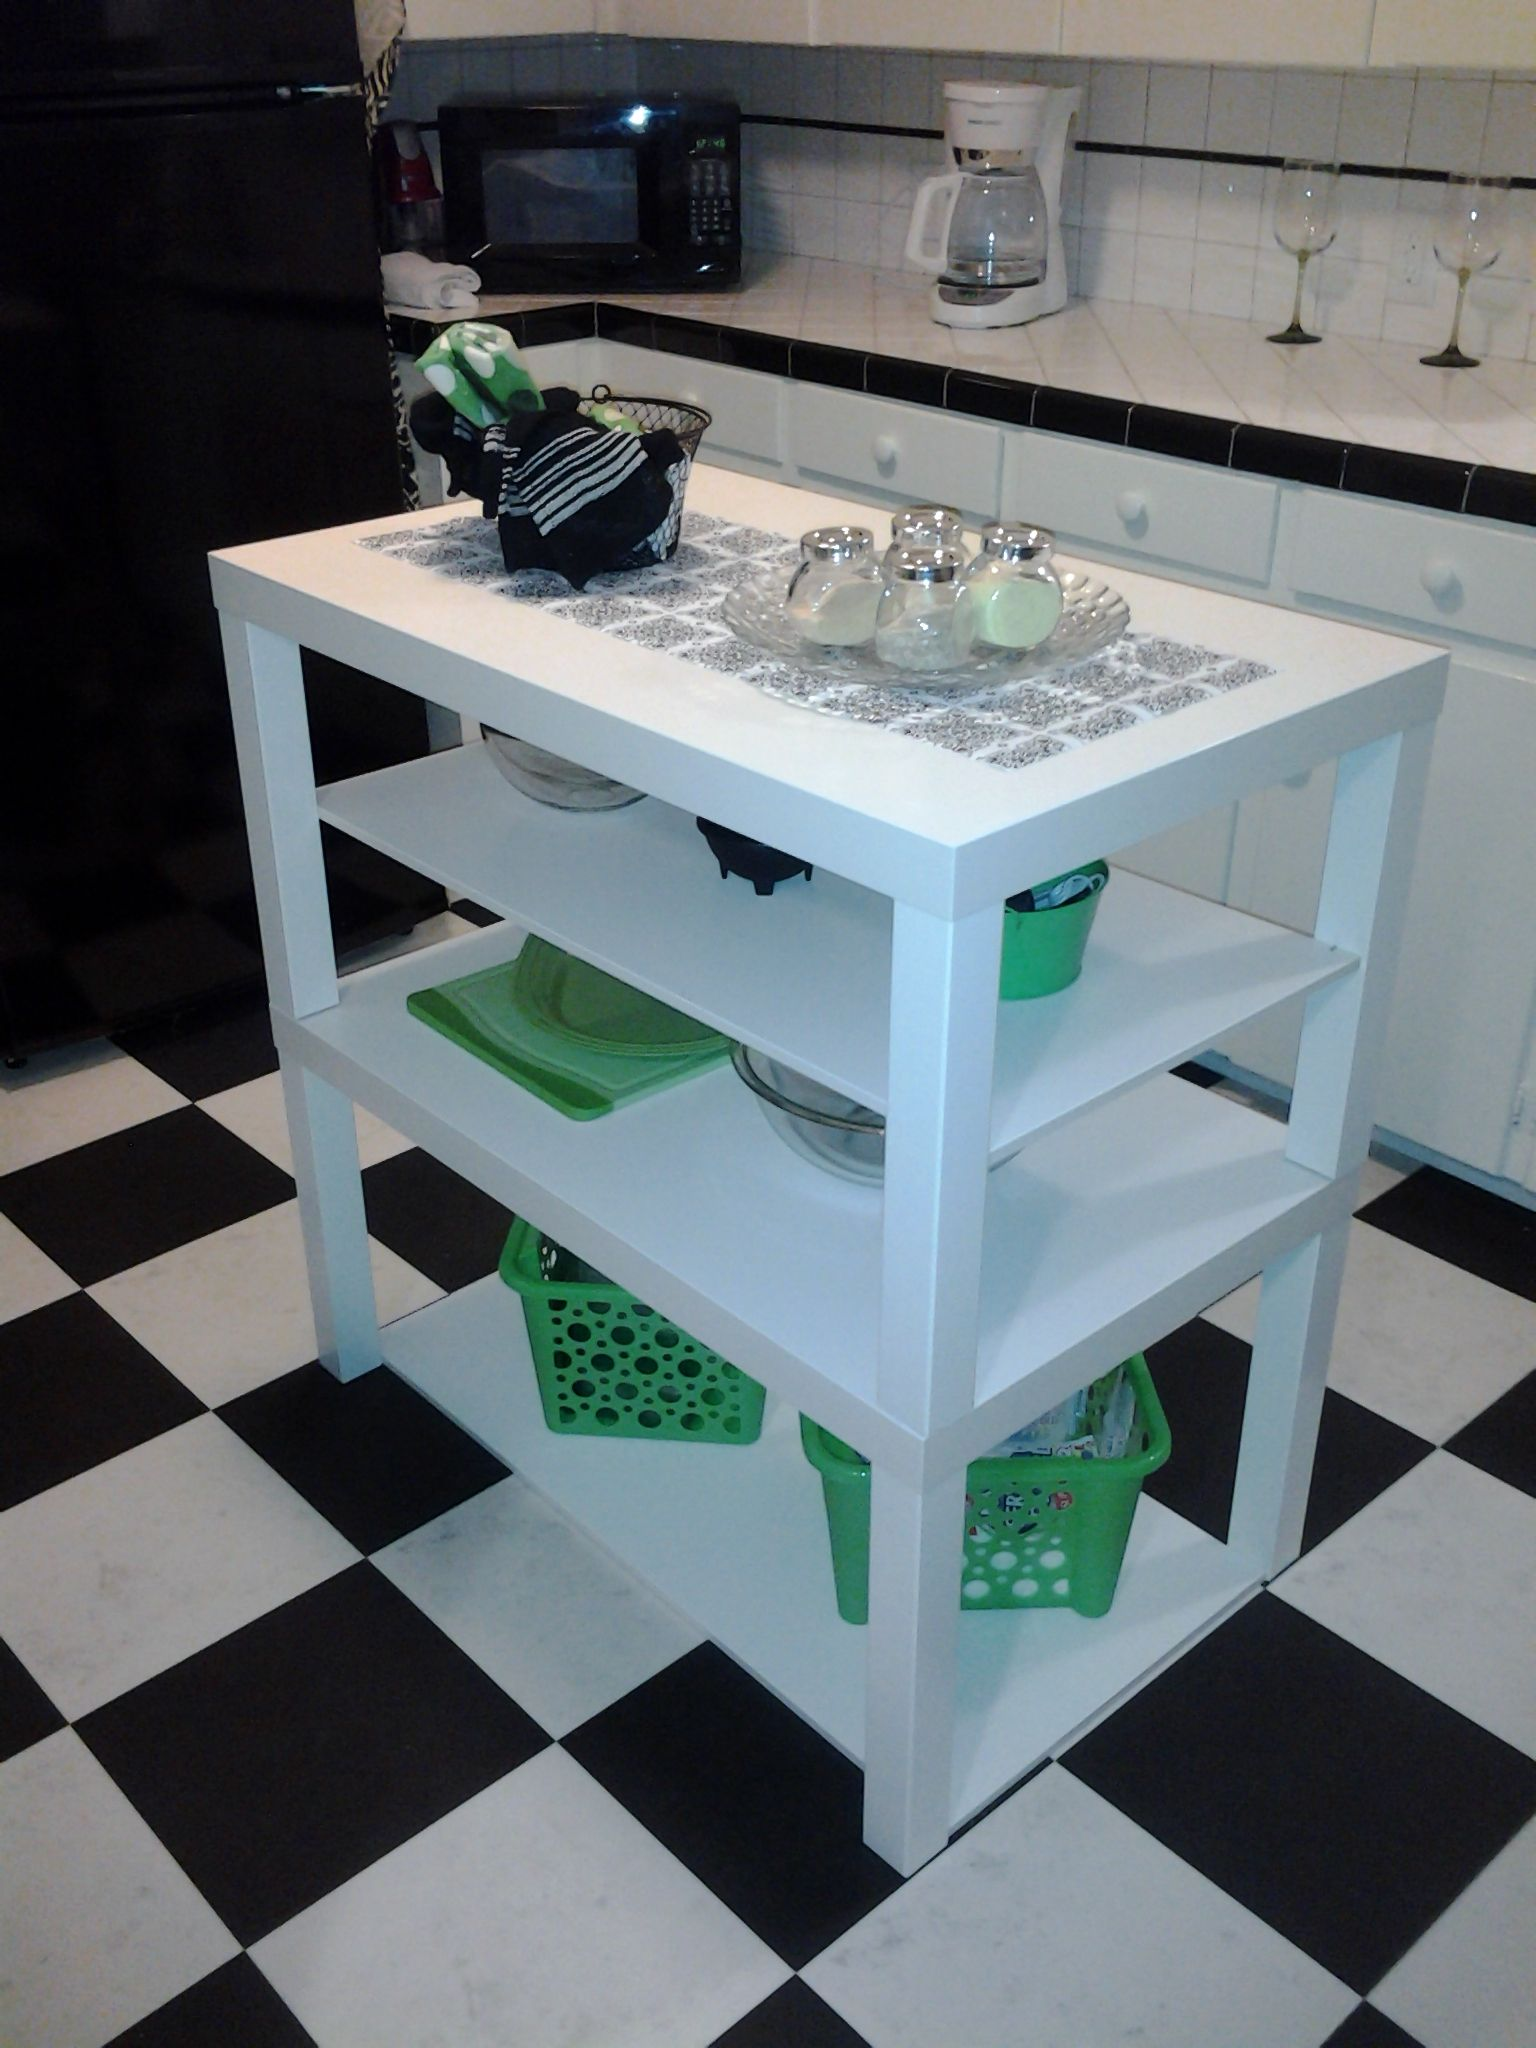 ikea hack ikea lack coffee tables turned cute little kitchen island by a diy beginner diy. Black Bedroom Furniture Sets. Home Design Ideas